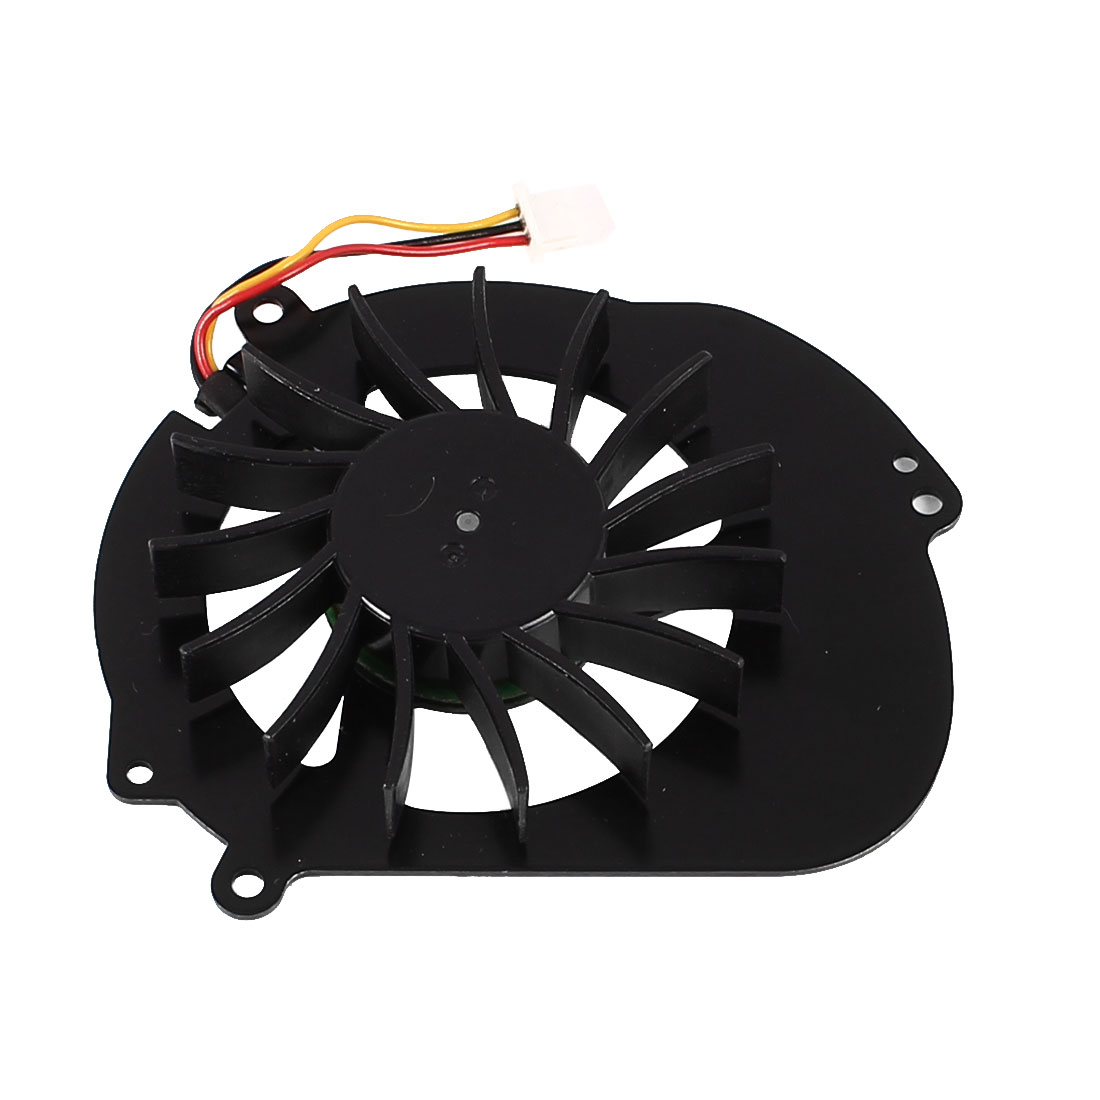 BS5005HB15-I DC 5V 0.4A 3 Wires Connector Laptop CPU Cooling Fan